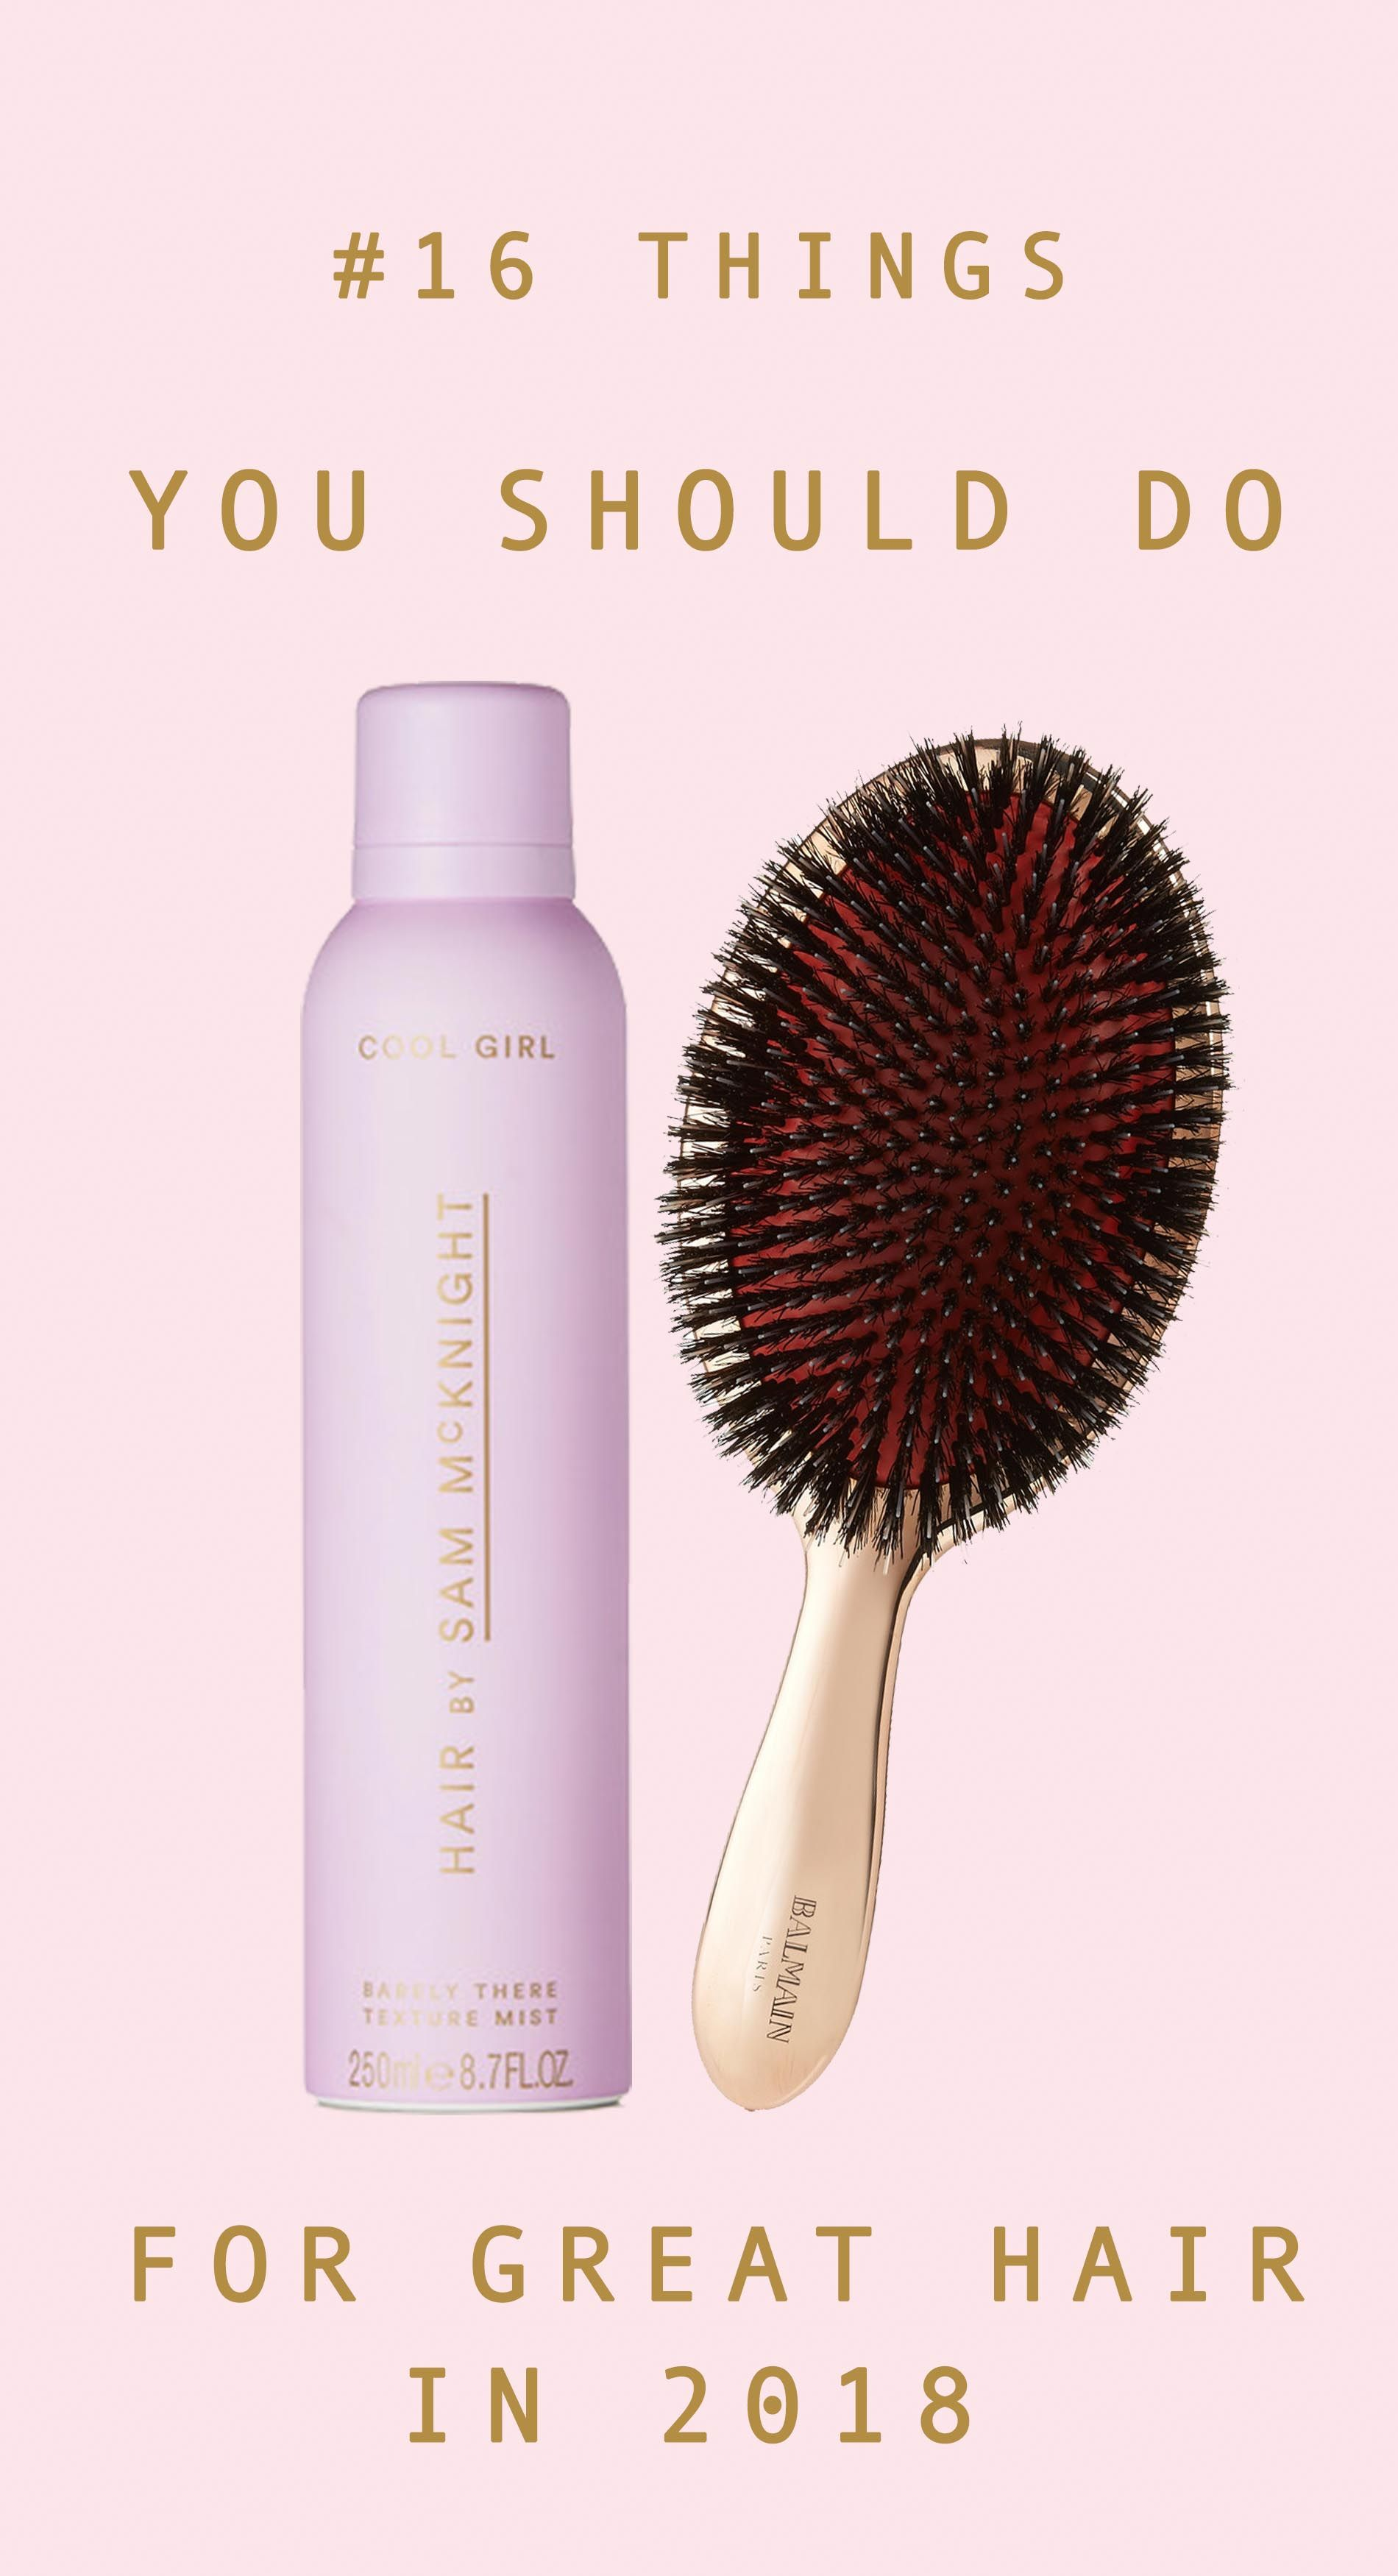 caf3c98d Balmain Hair Couture rose gold brush and Sam McKnight Cool Girl Barely  There Texture Mist